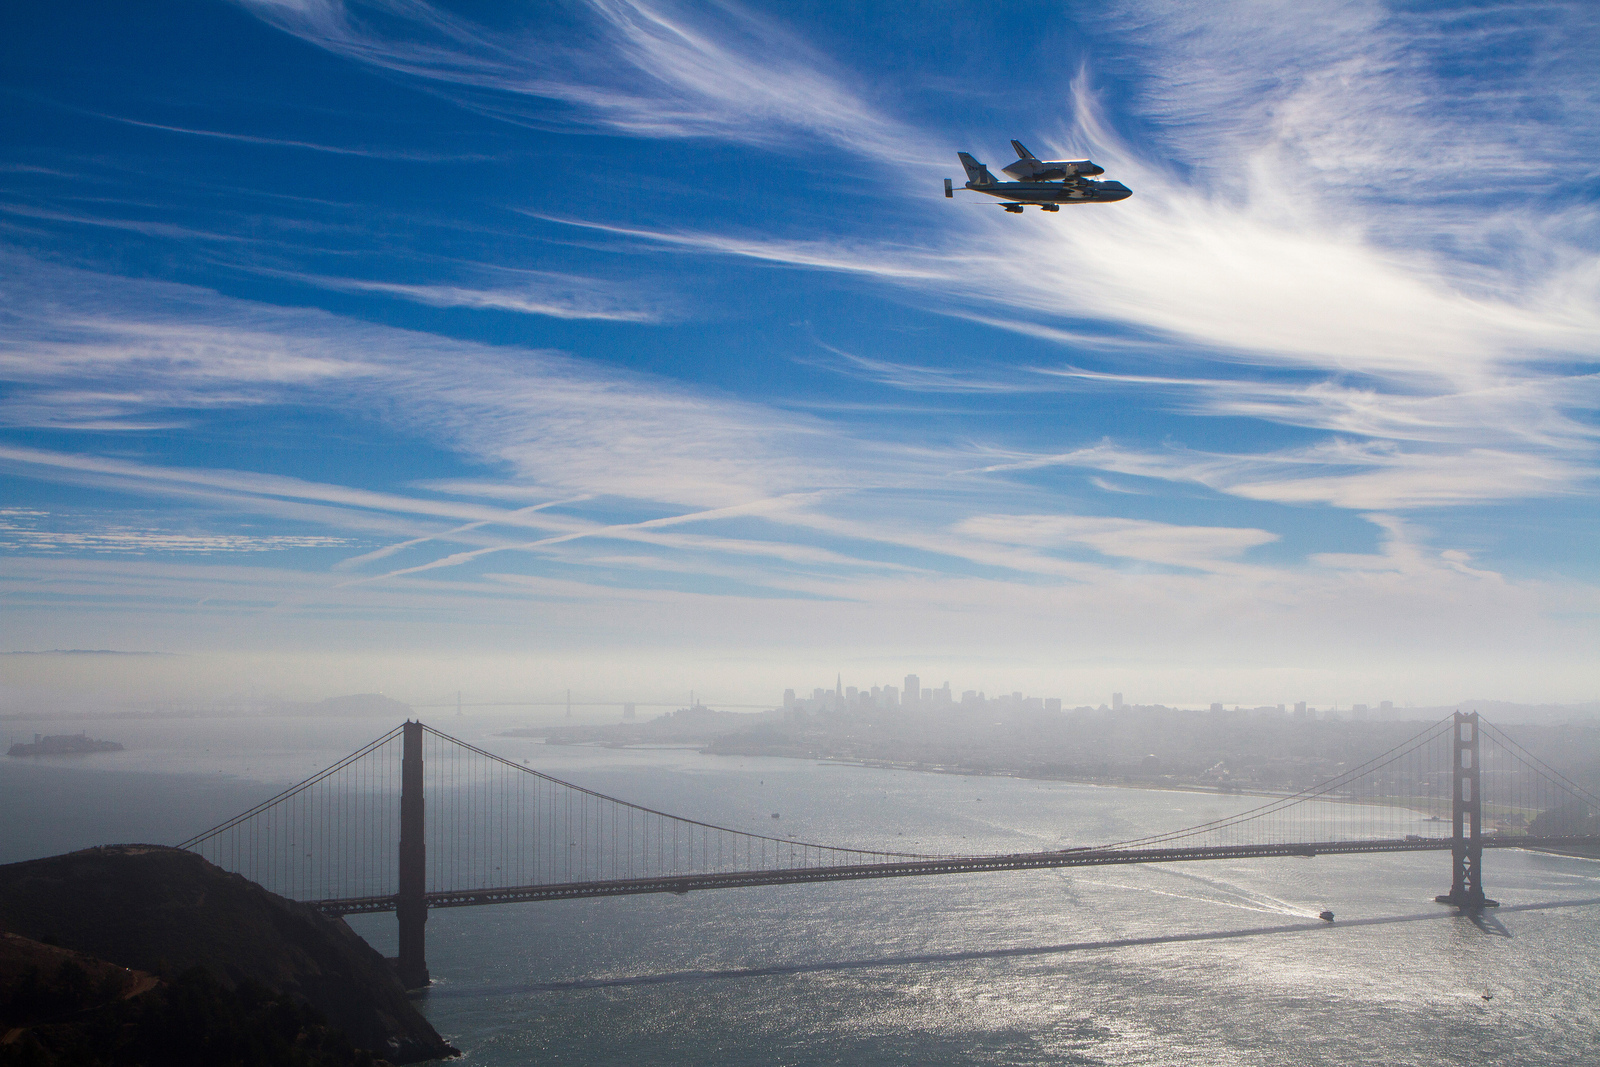 Shuttle Endeavour Soars Over Golden Gate Bridge